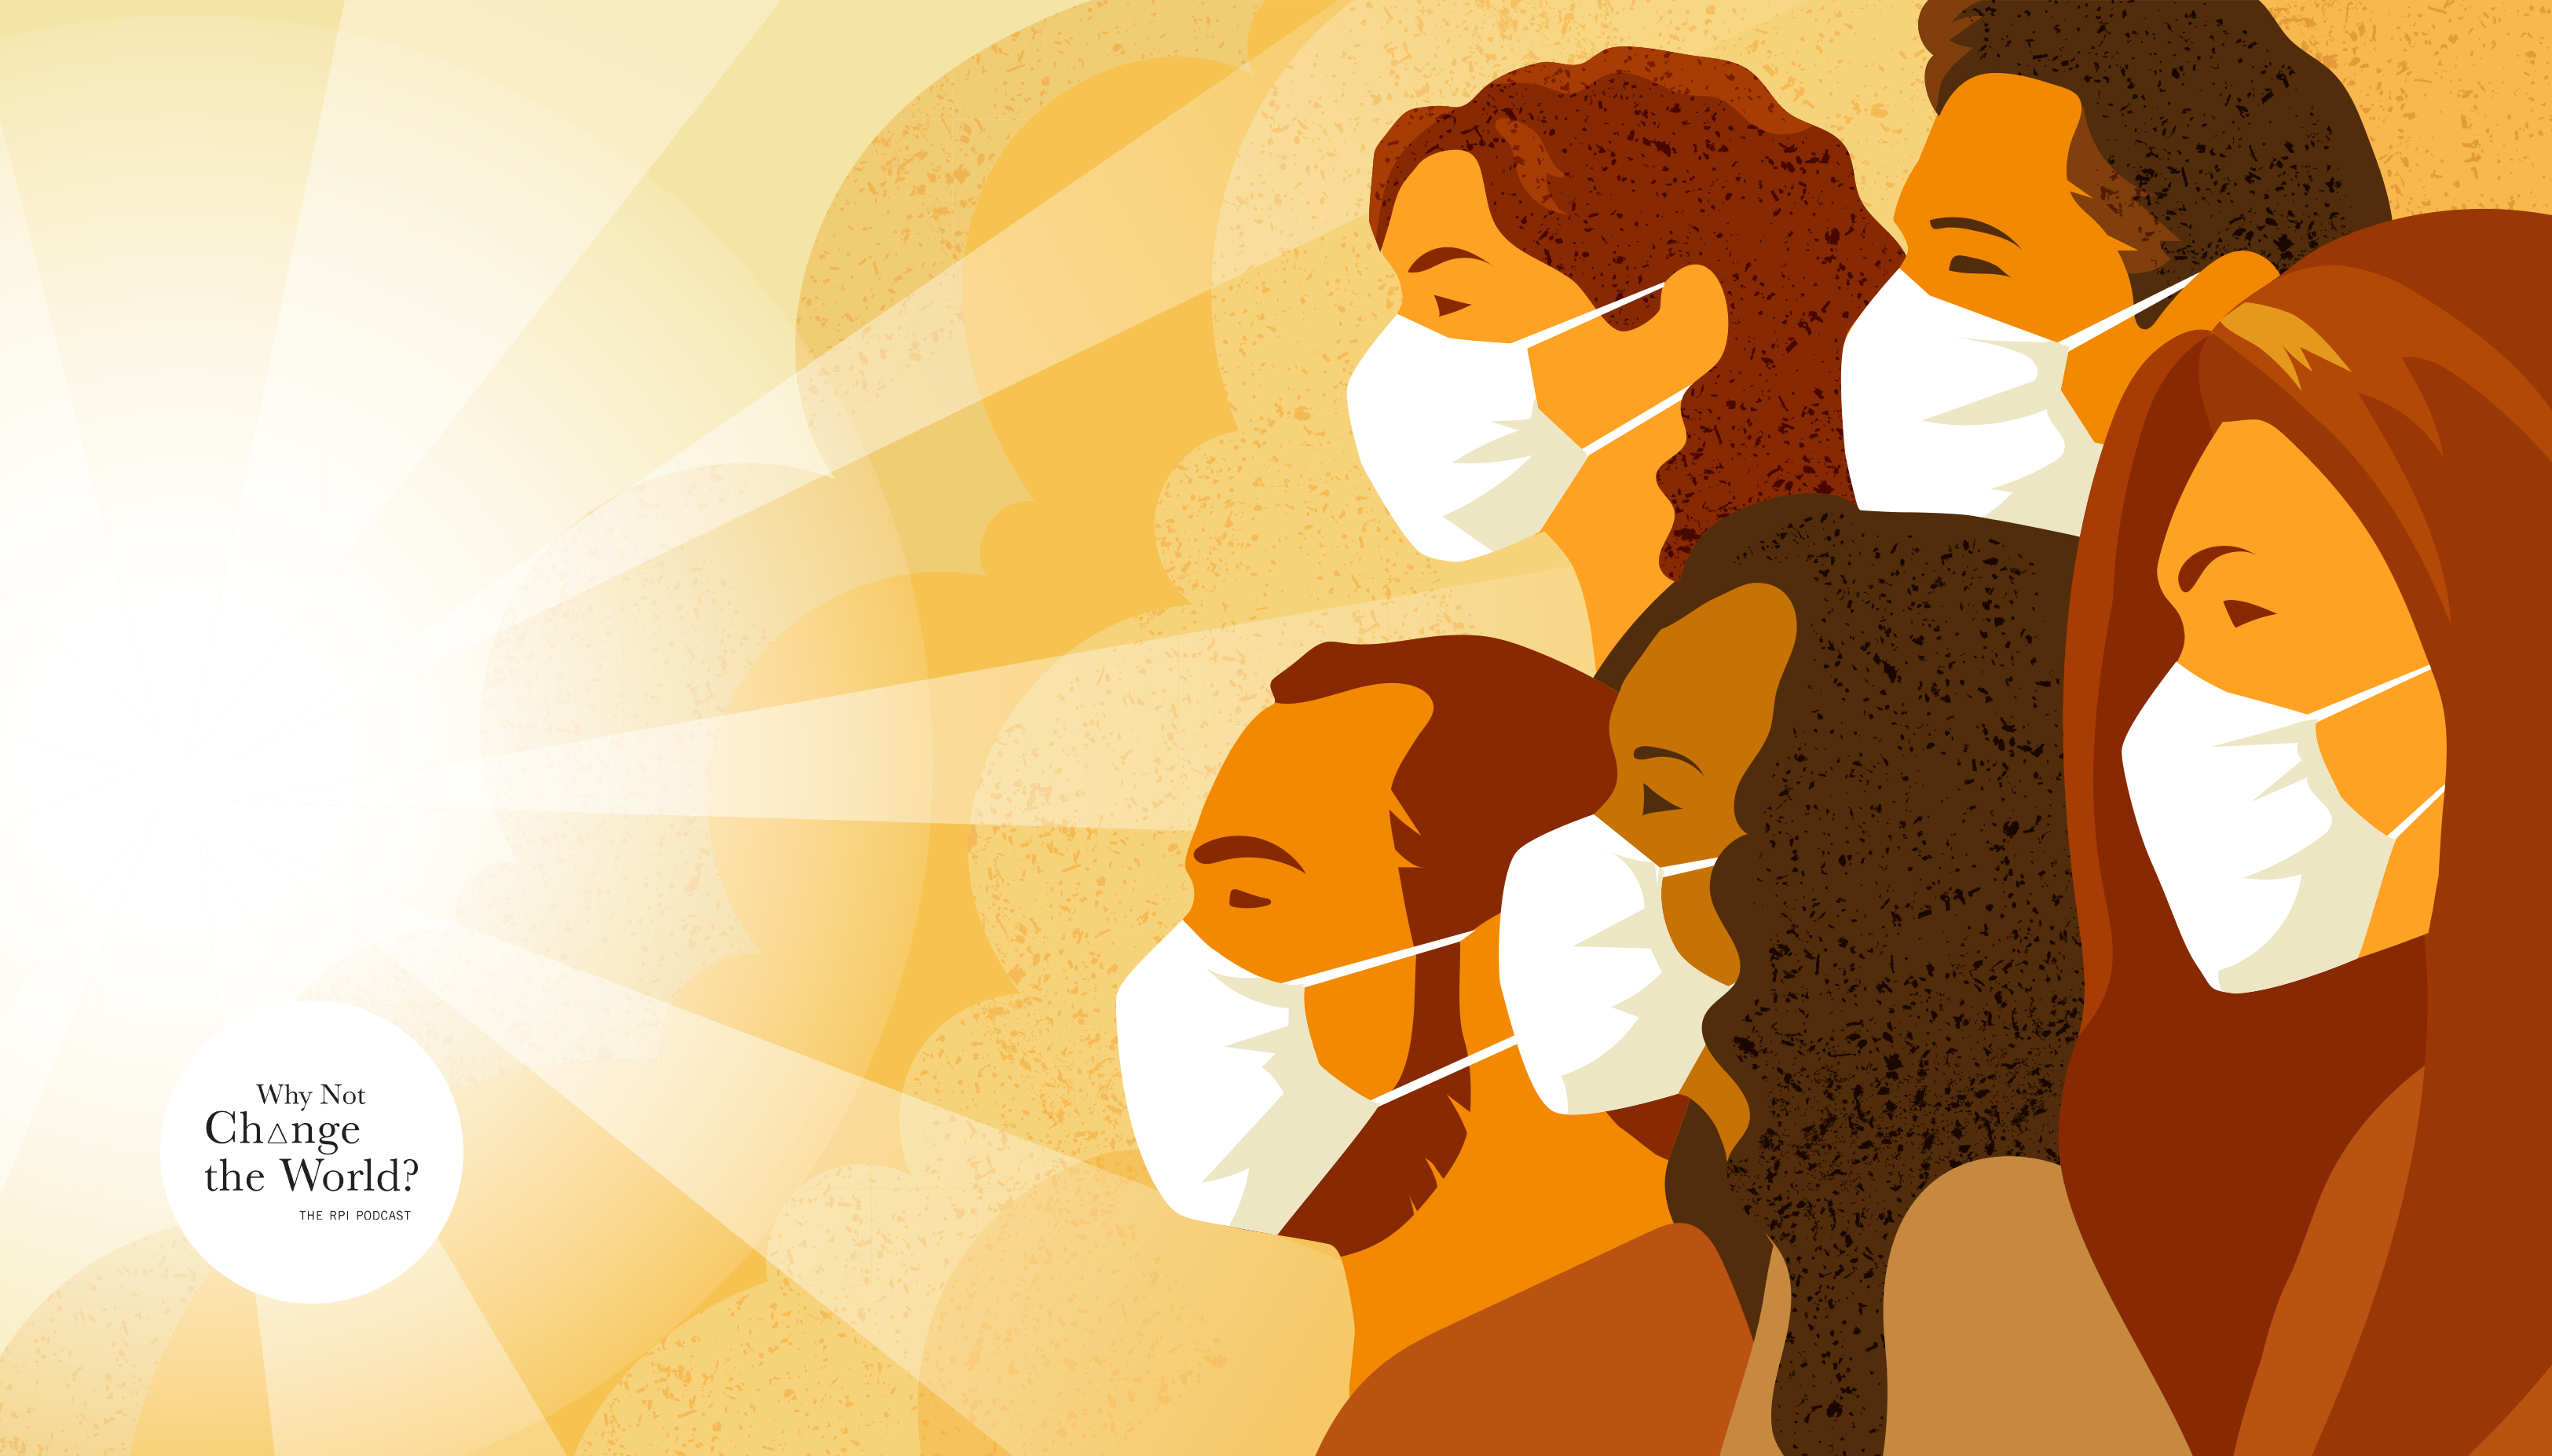 Illustration of sunlight shining on a group of people wearing face masks